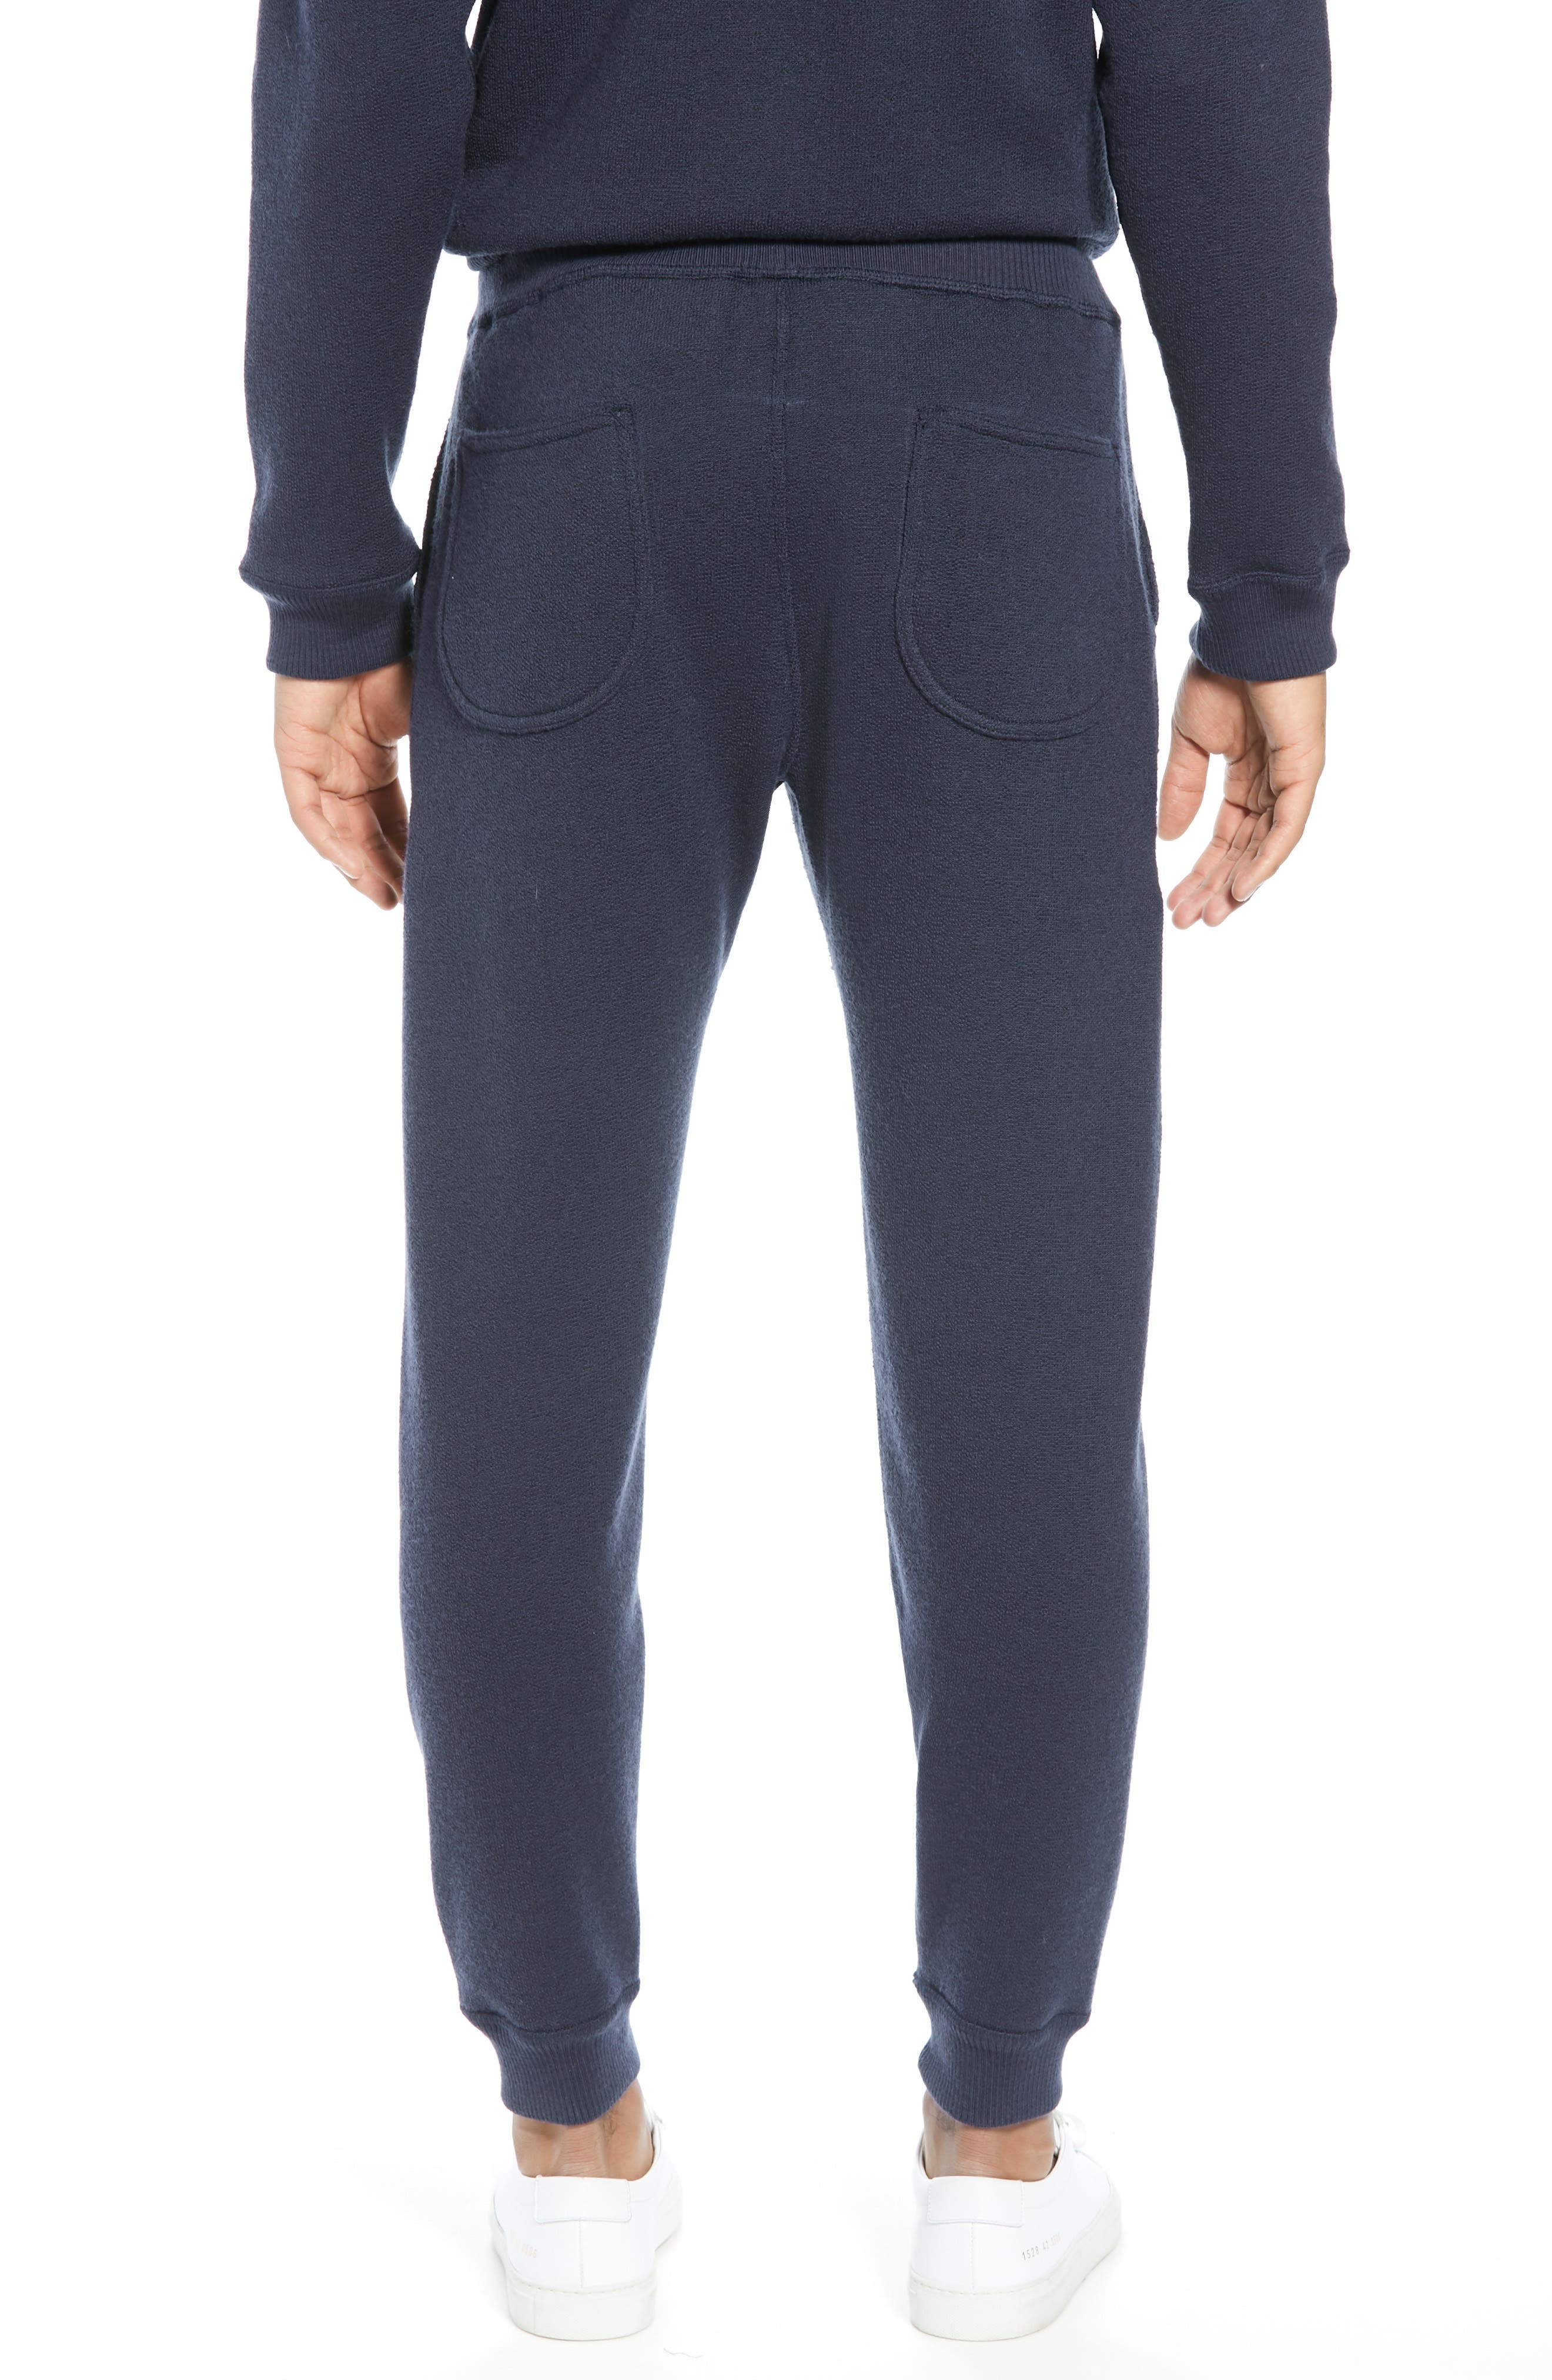 BEST MADE CO.,                             The Merino Wool Fleece Sweatpants,                             Alternate thumbnail 3, color,                             NAVY